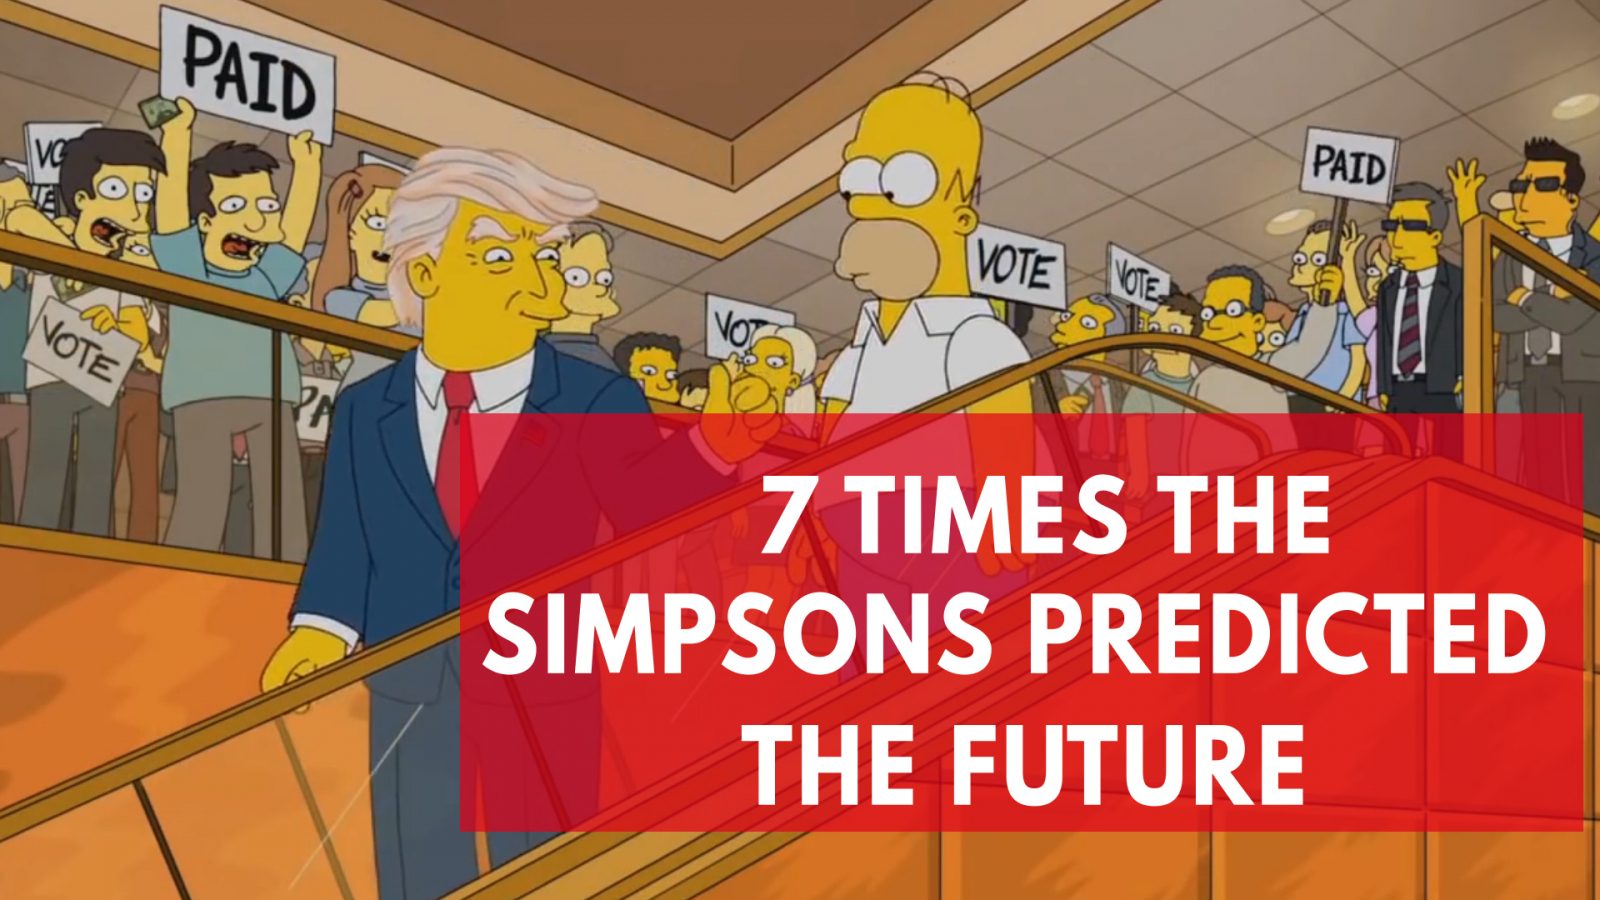 10 Predictions Of 'The Simpsons' For 2019 And Beyond (Part 1)